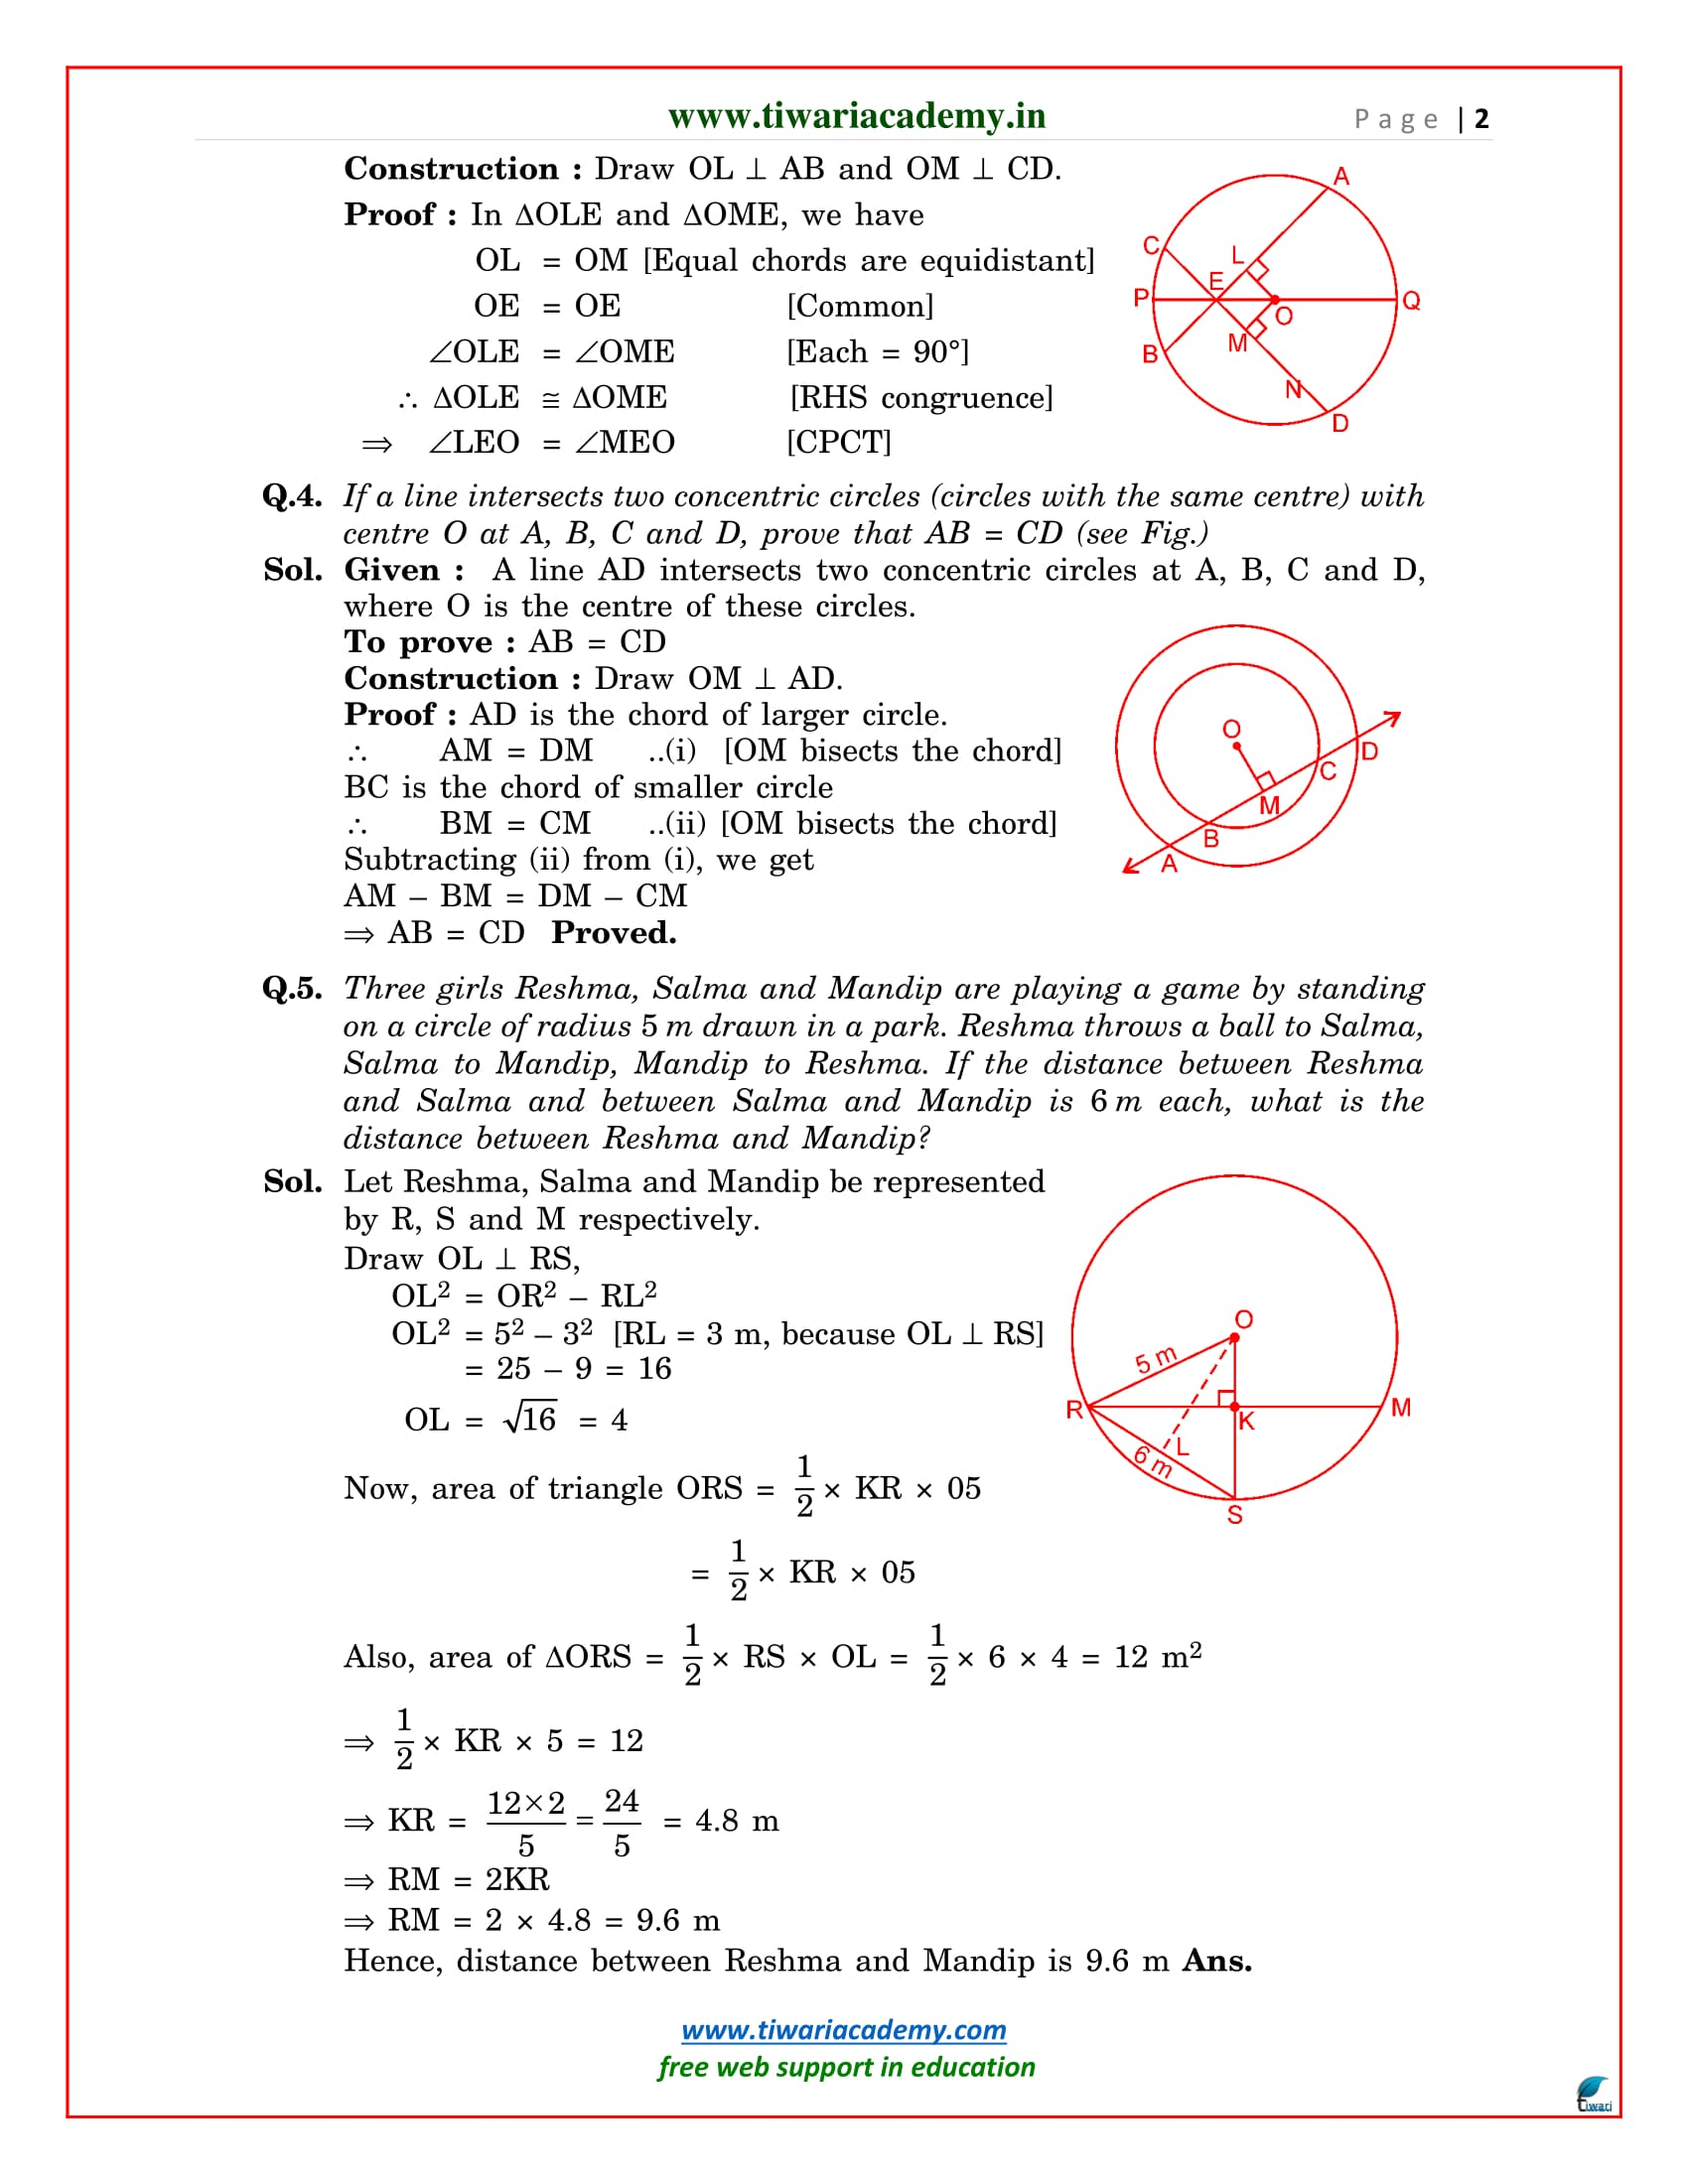 class 9 maths chapter 10 exercise 10.4 solutions